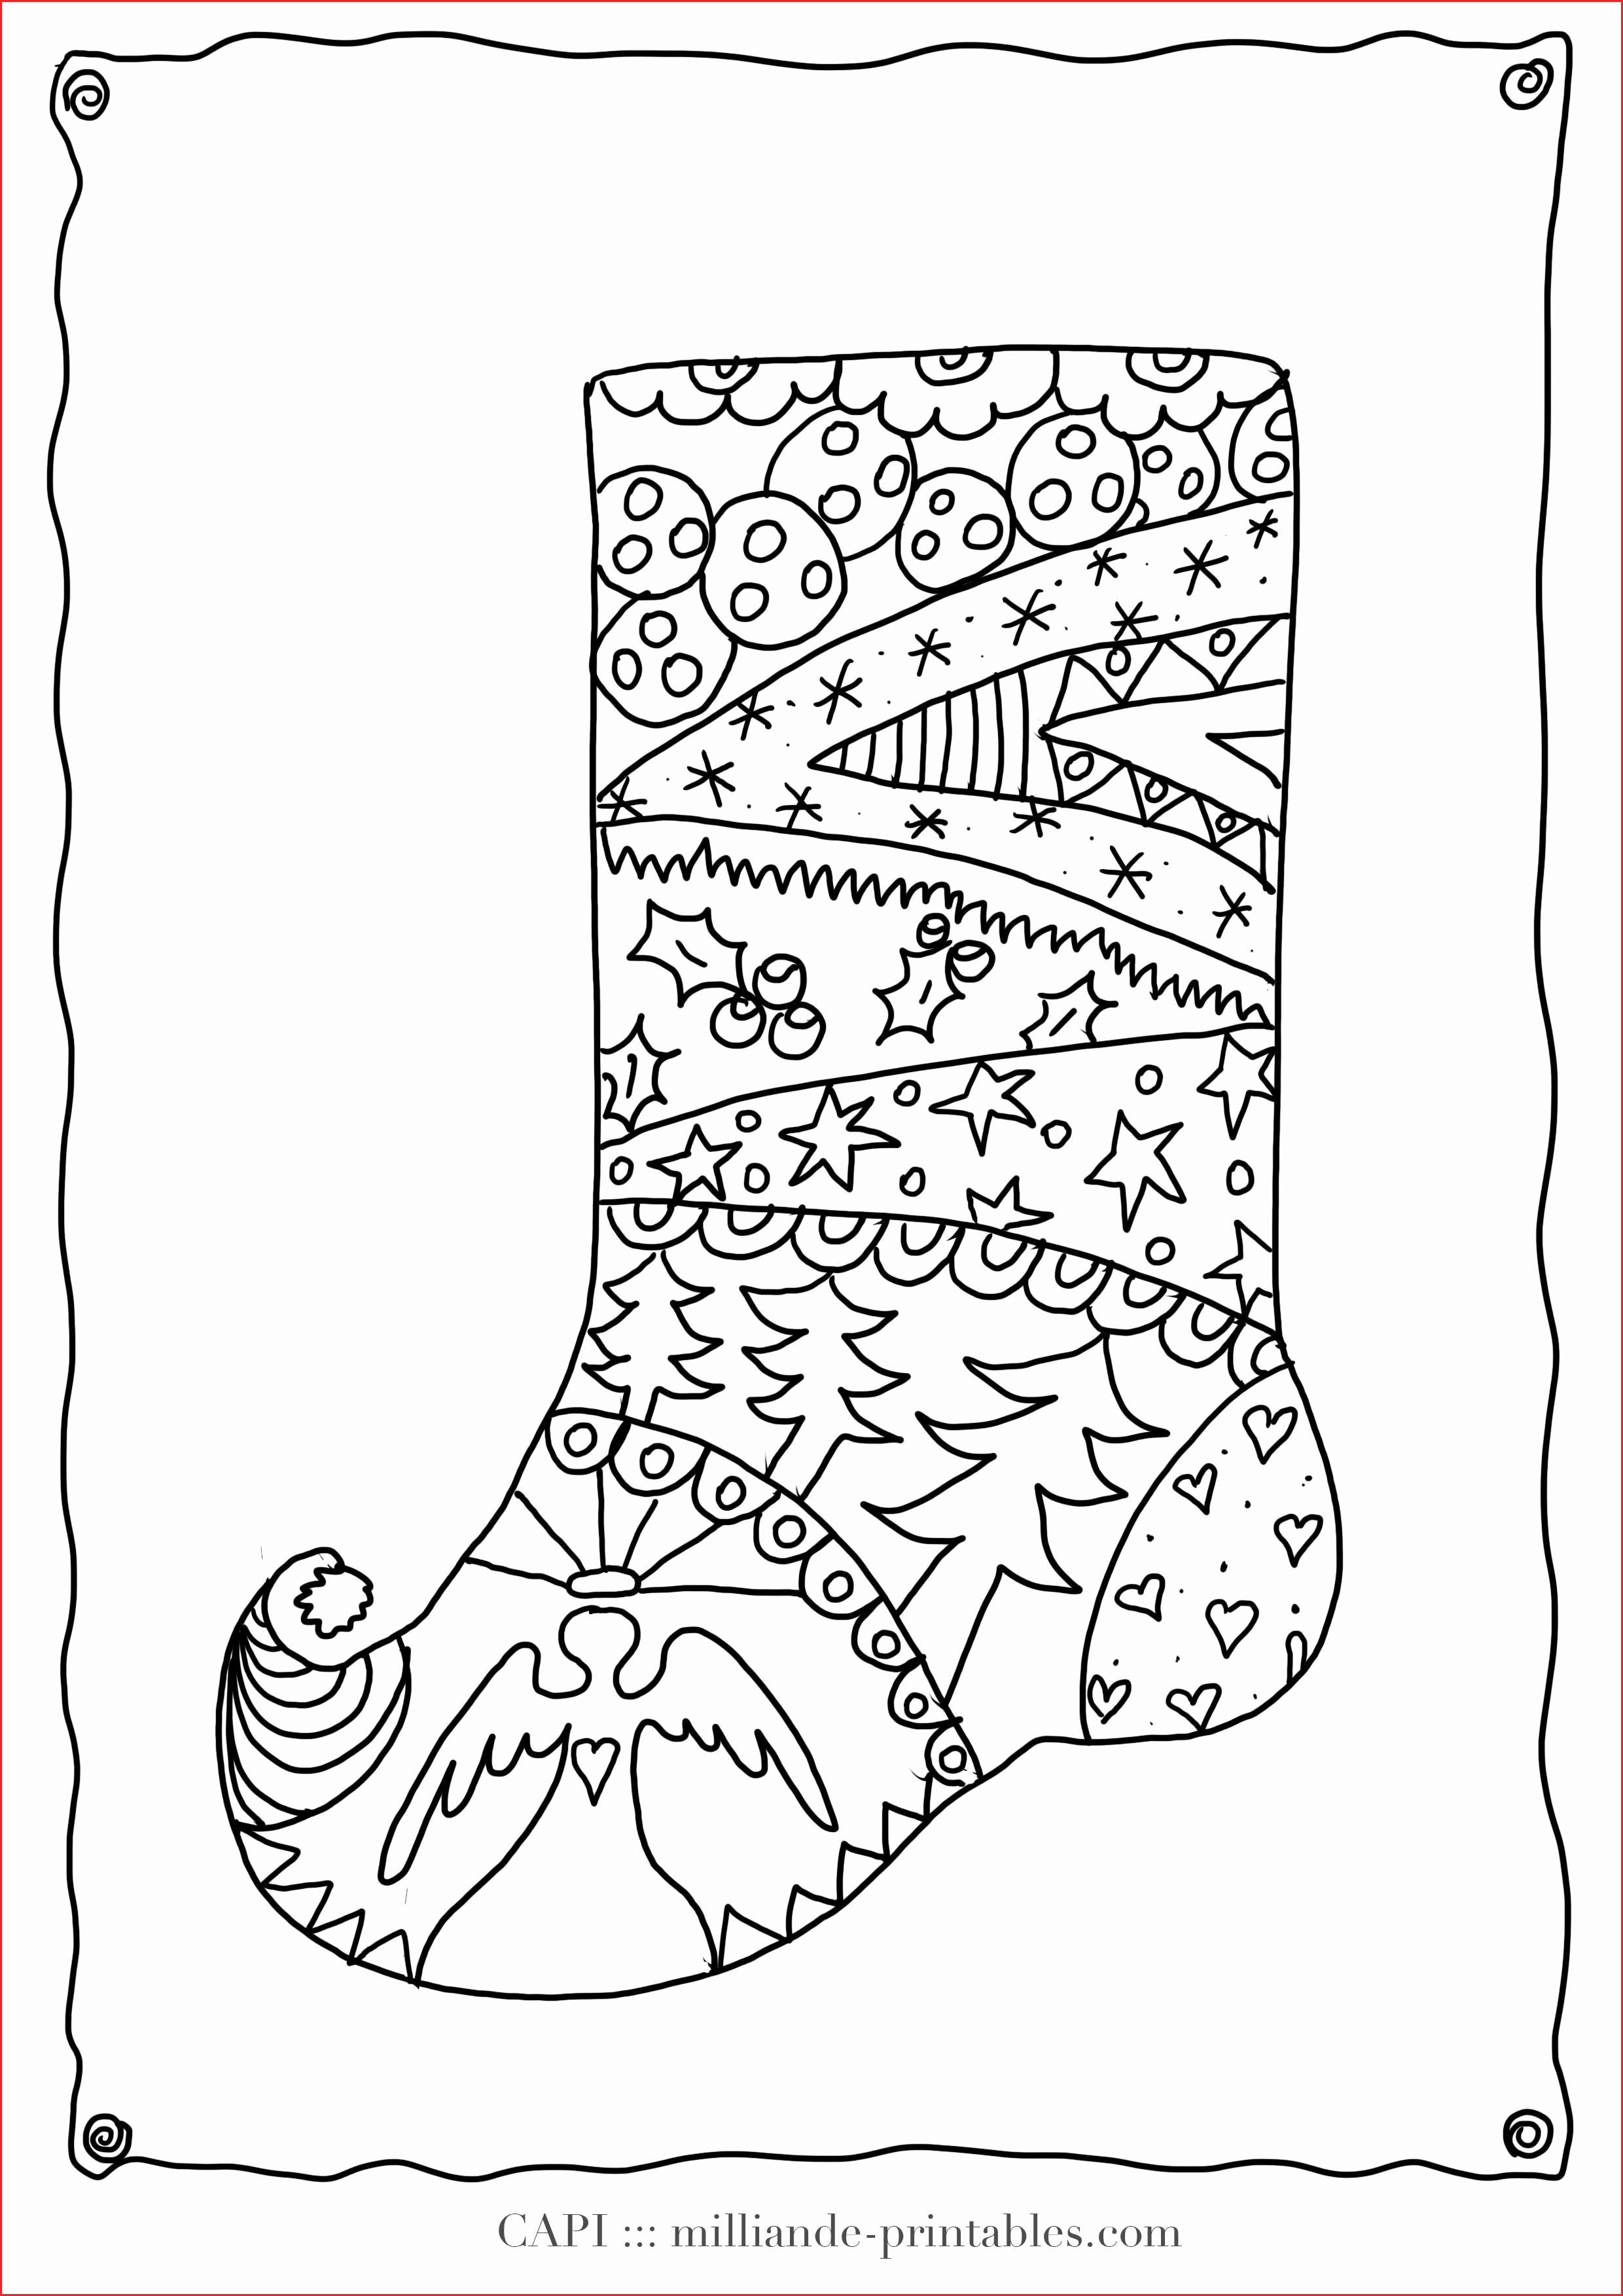 Christmas Holiday Printable Coloring Pages Best Of Coloring Page Christmas Coloring Printables Printable Christmas Coloring Pages Free Christmas Coloring Pages